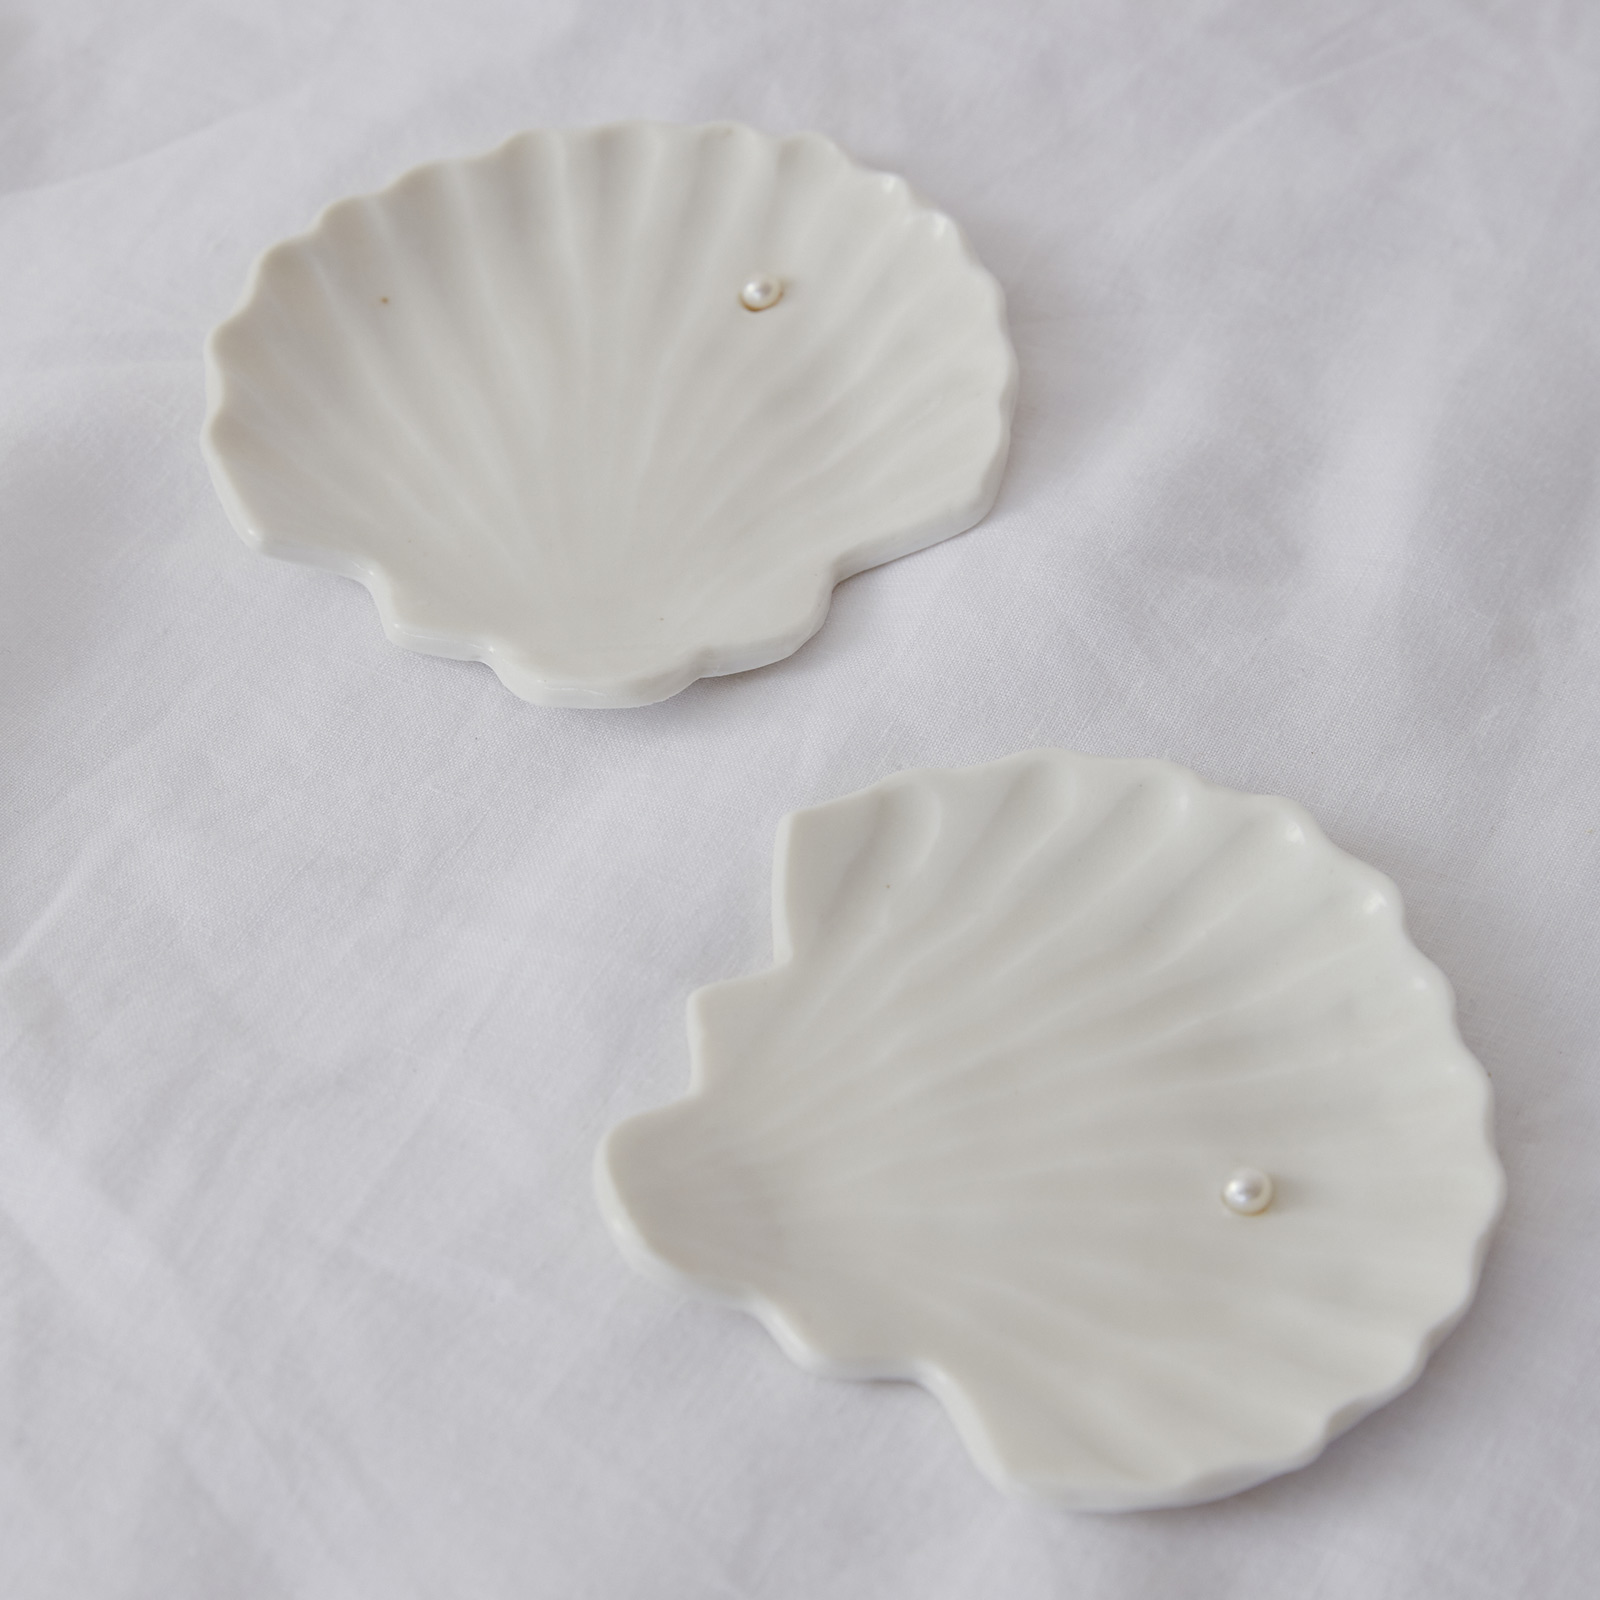 Shell Dish With Pearl In Porcelain With Freshwater Pearl By Gretel Corrie 03